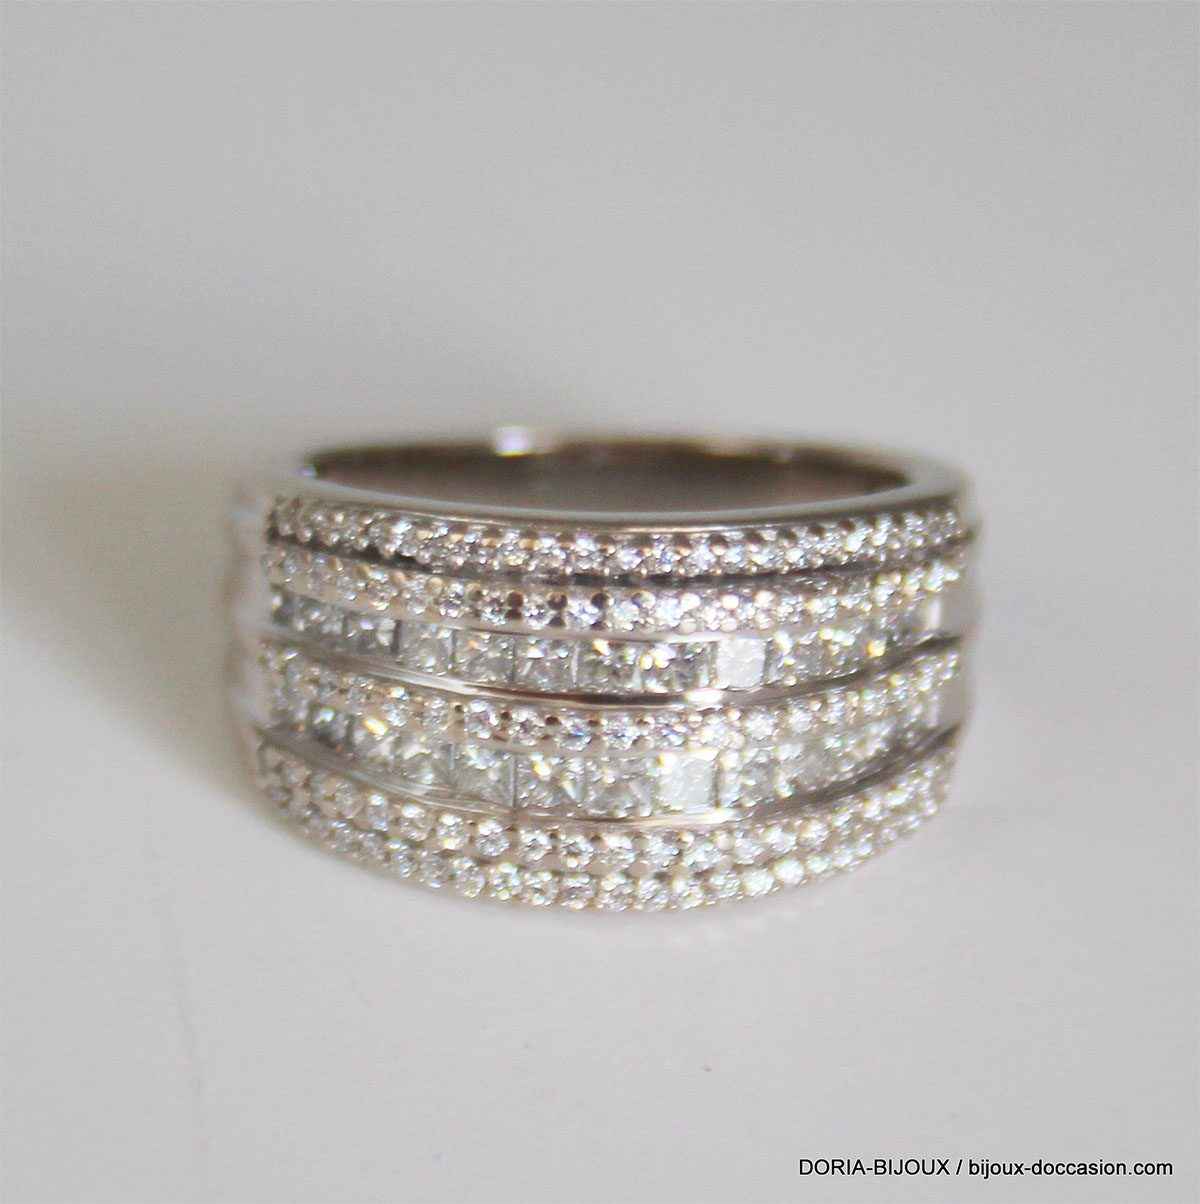 Bague Or Gris 18k 750 Pavage Diamants- 7.6grs- 52